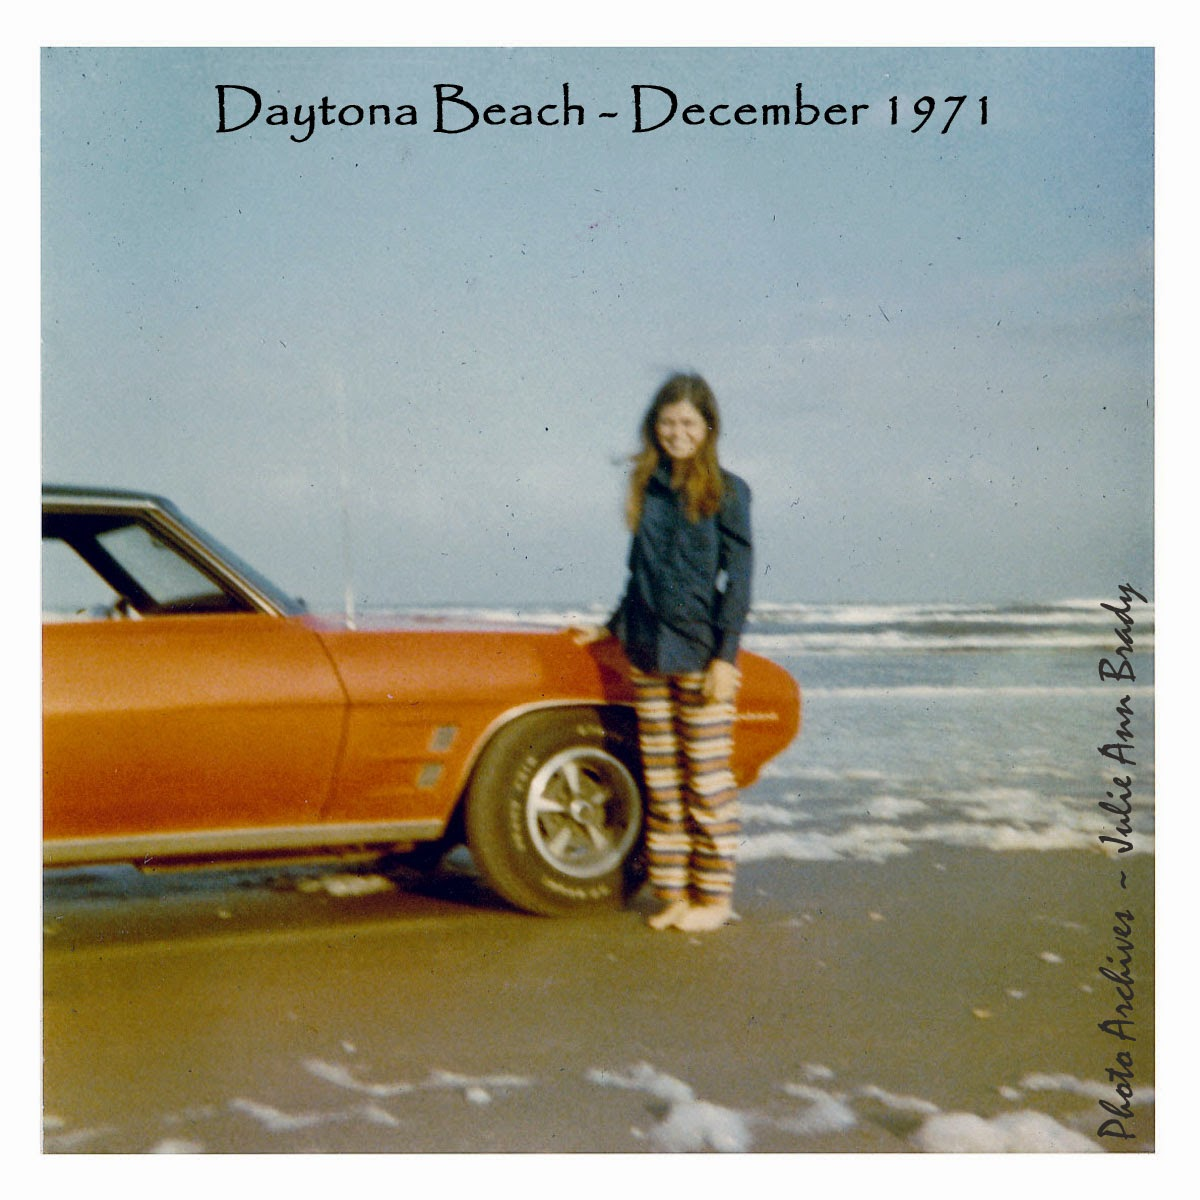 The Honeymoon - Daytona Beach December 1971